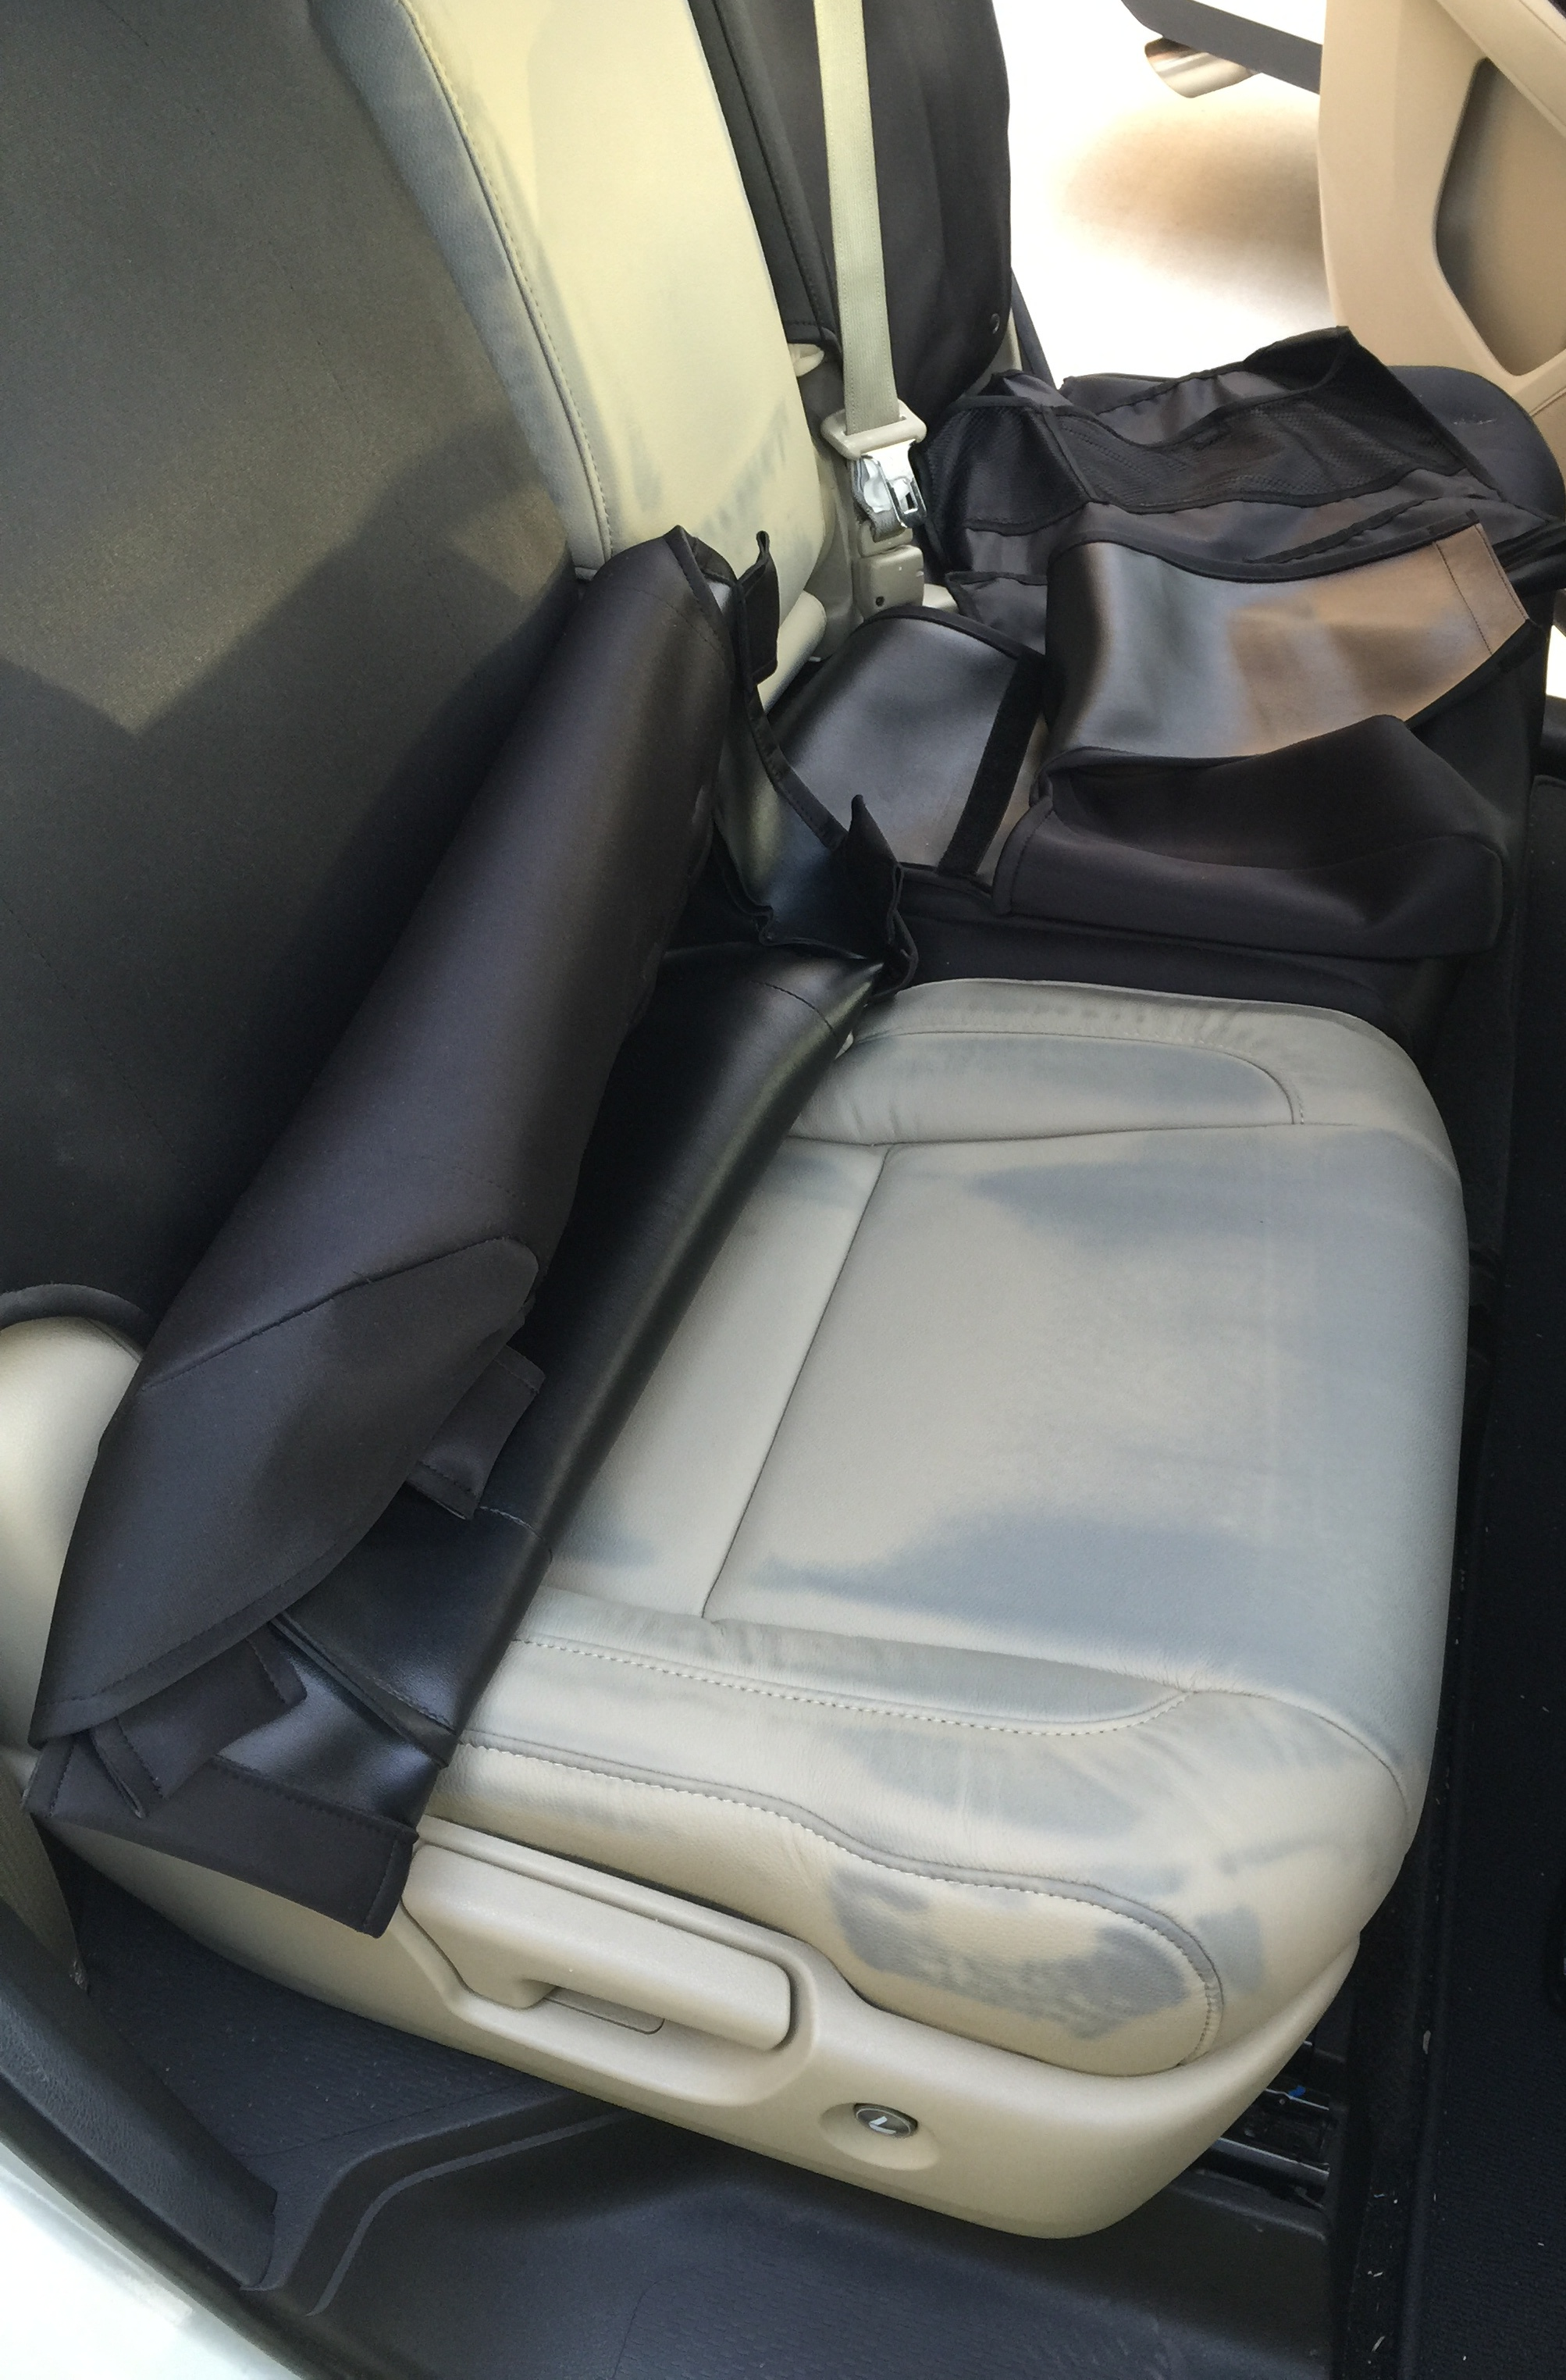 Leather Seats Ruined By OEM Seat Cover Acura MDX Forum Acura MDX - Acura mdx seat covers